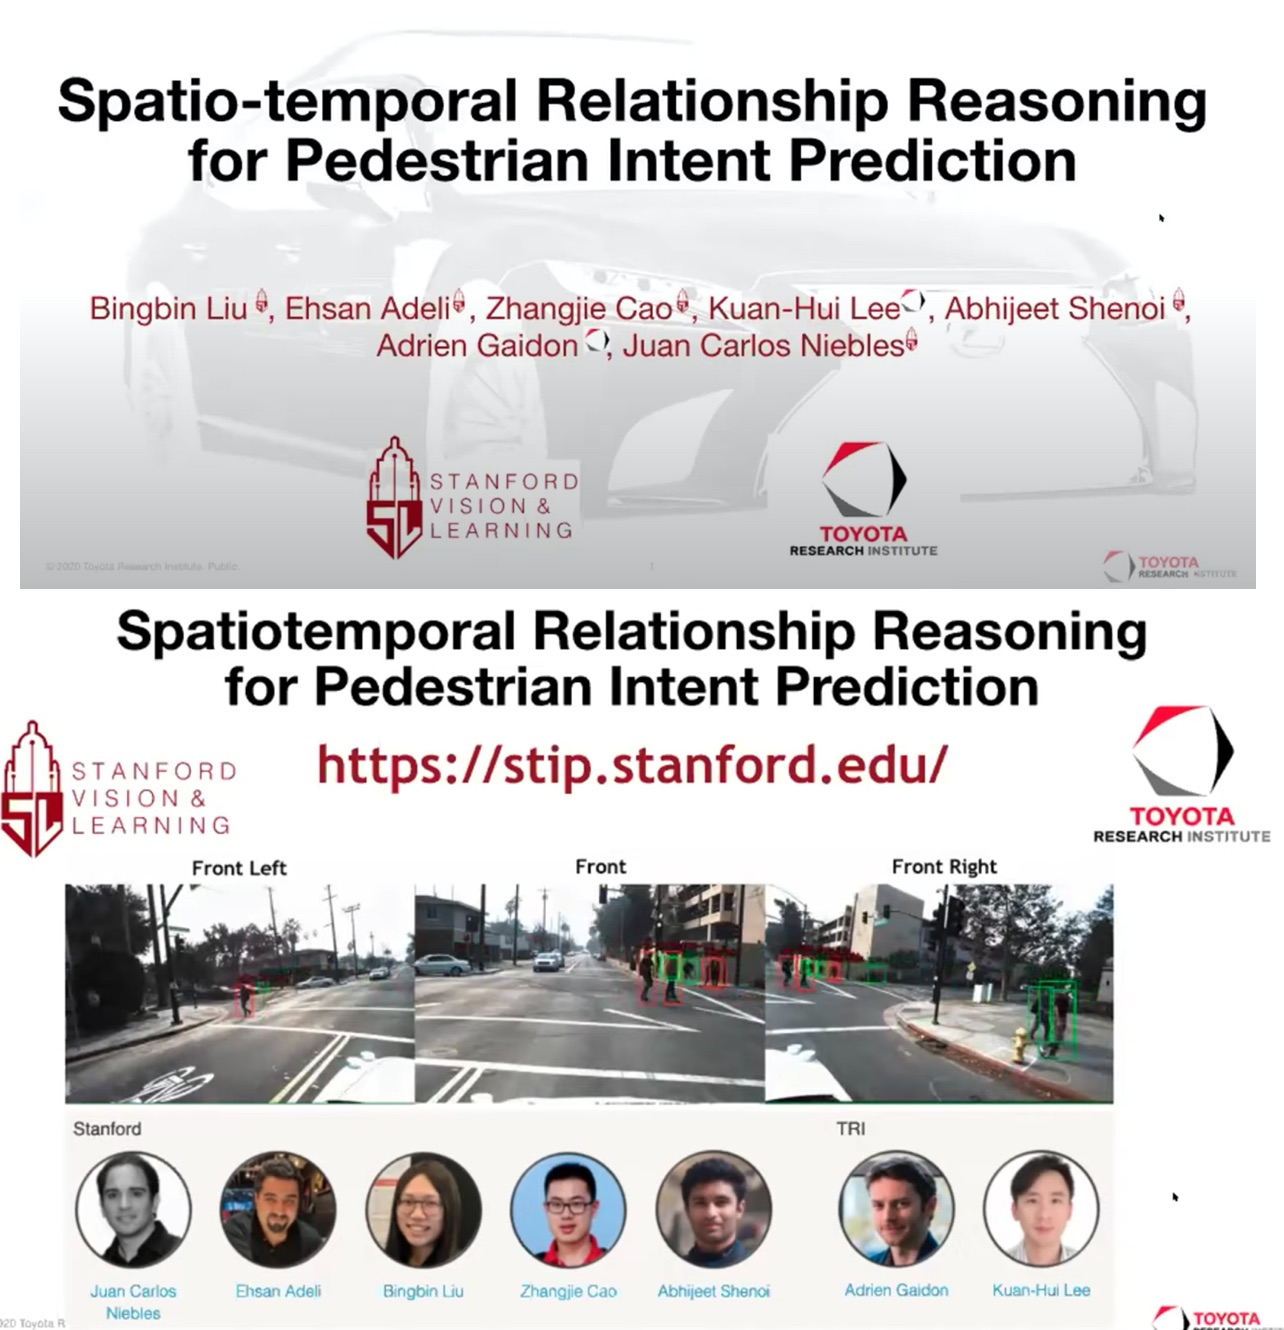 ICRA 2020 LHMP workshop - Spatiotemporal Relationship Reasoning for Pedestrian Intent Prediction